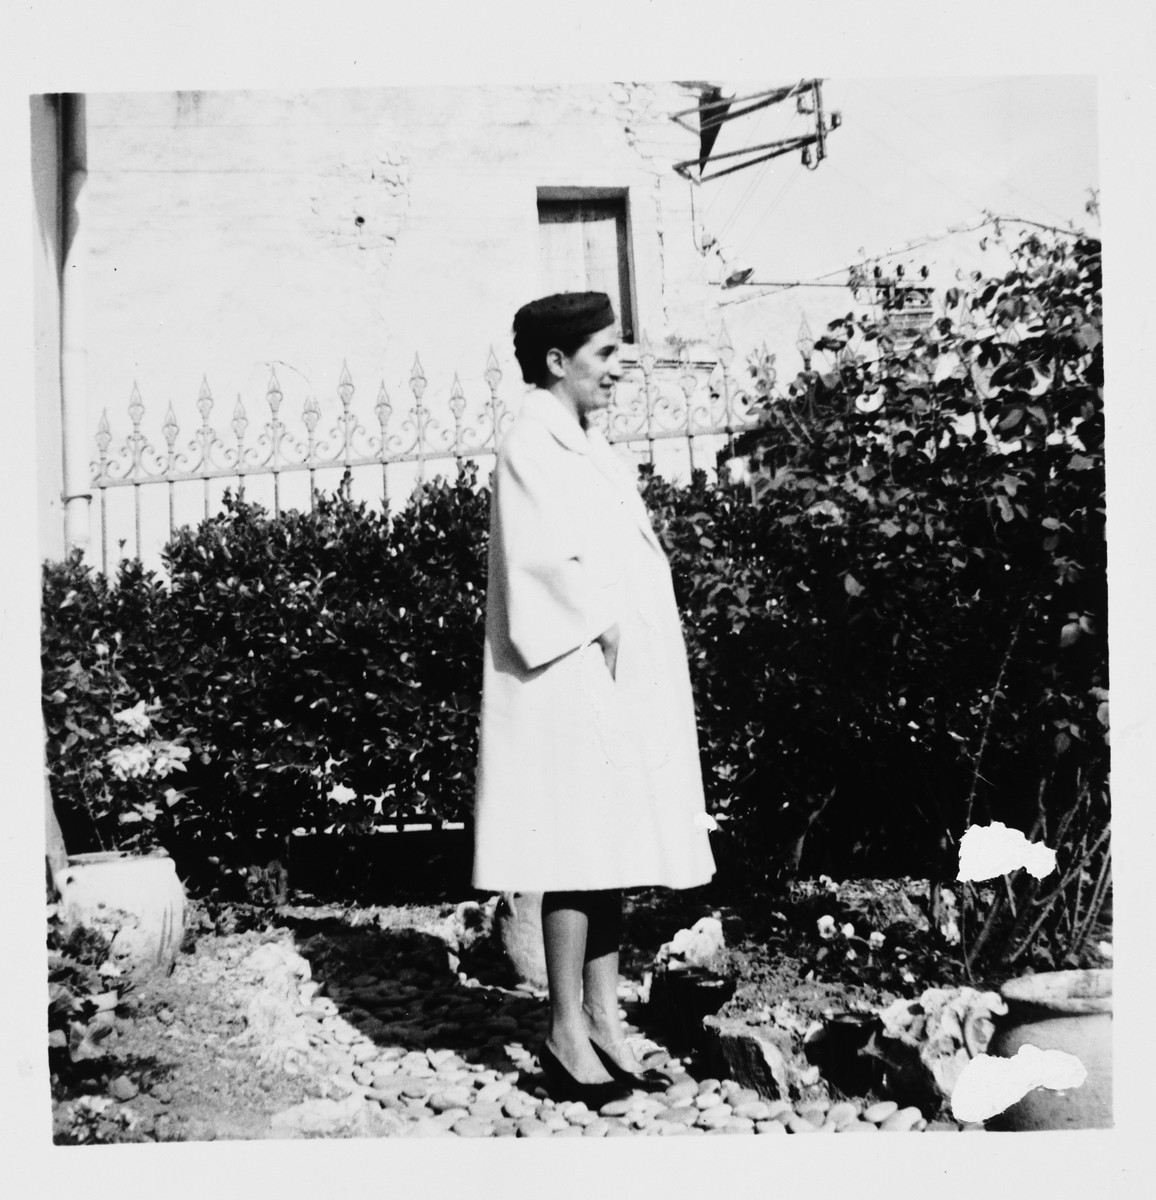 Profile of French rescuer Marie Antoinette Pallarès at her home in Montpellier.  Pallarès, along with her three children, was recognized by Yad Vashem as one of the Righteous Among the Nations.